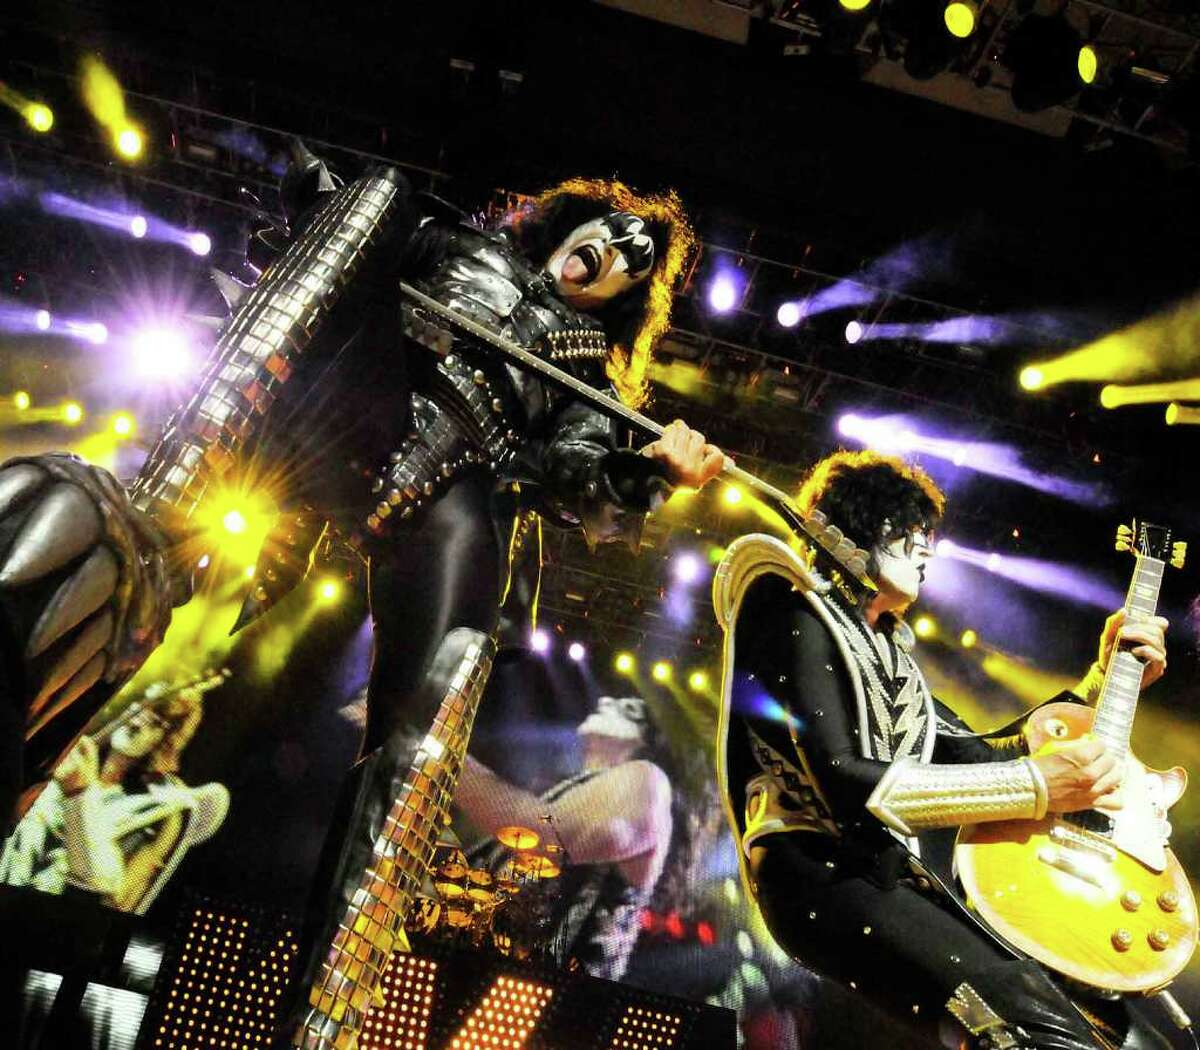 Gene Simmons sticks out his tongue in his classic fashion as Kiss performs at SPAC in Saratoga Springs on Aug. 17. (Michael P. Farrell / Times Union)